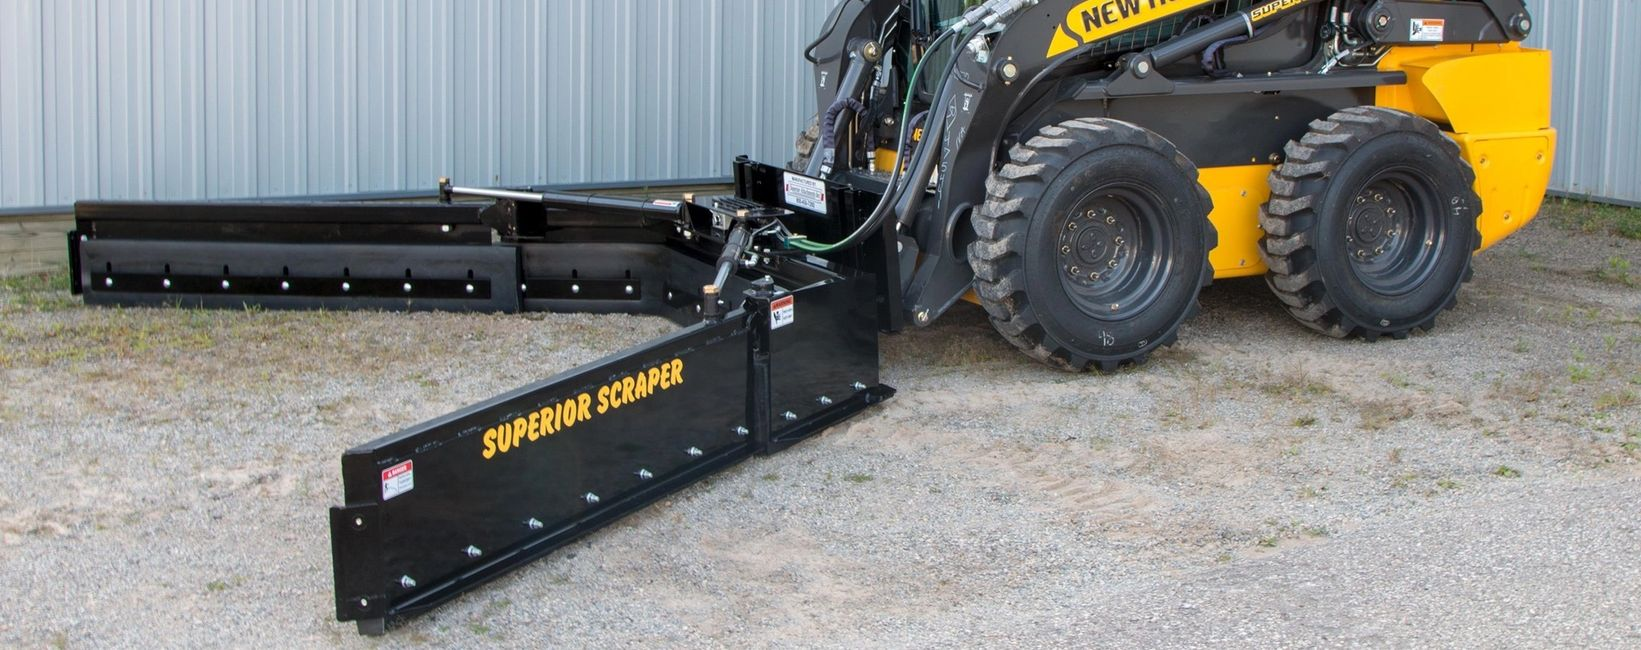 Adjustable skid steer manure scrpaer